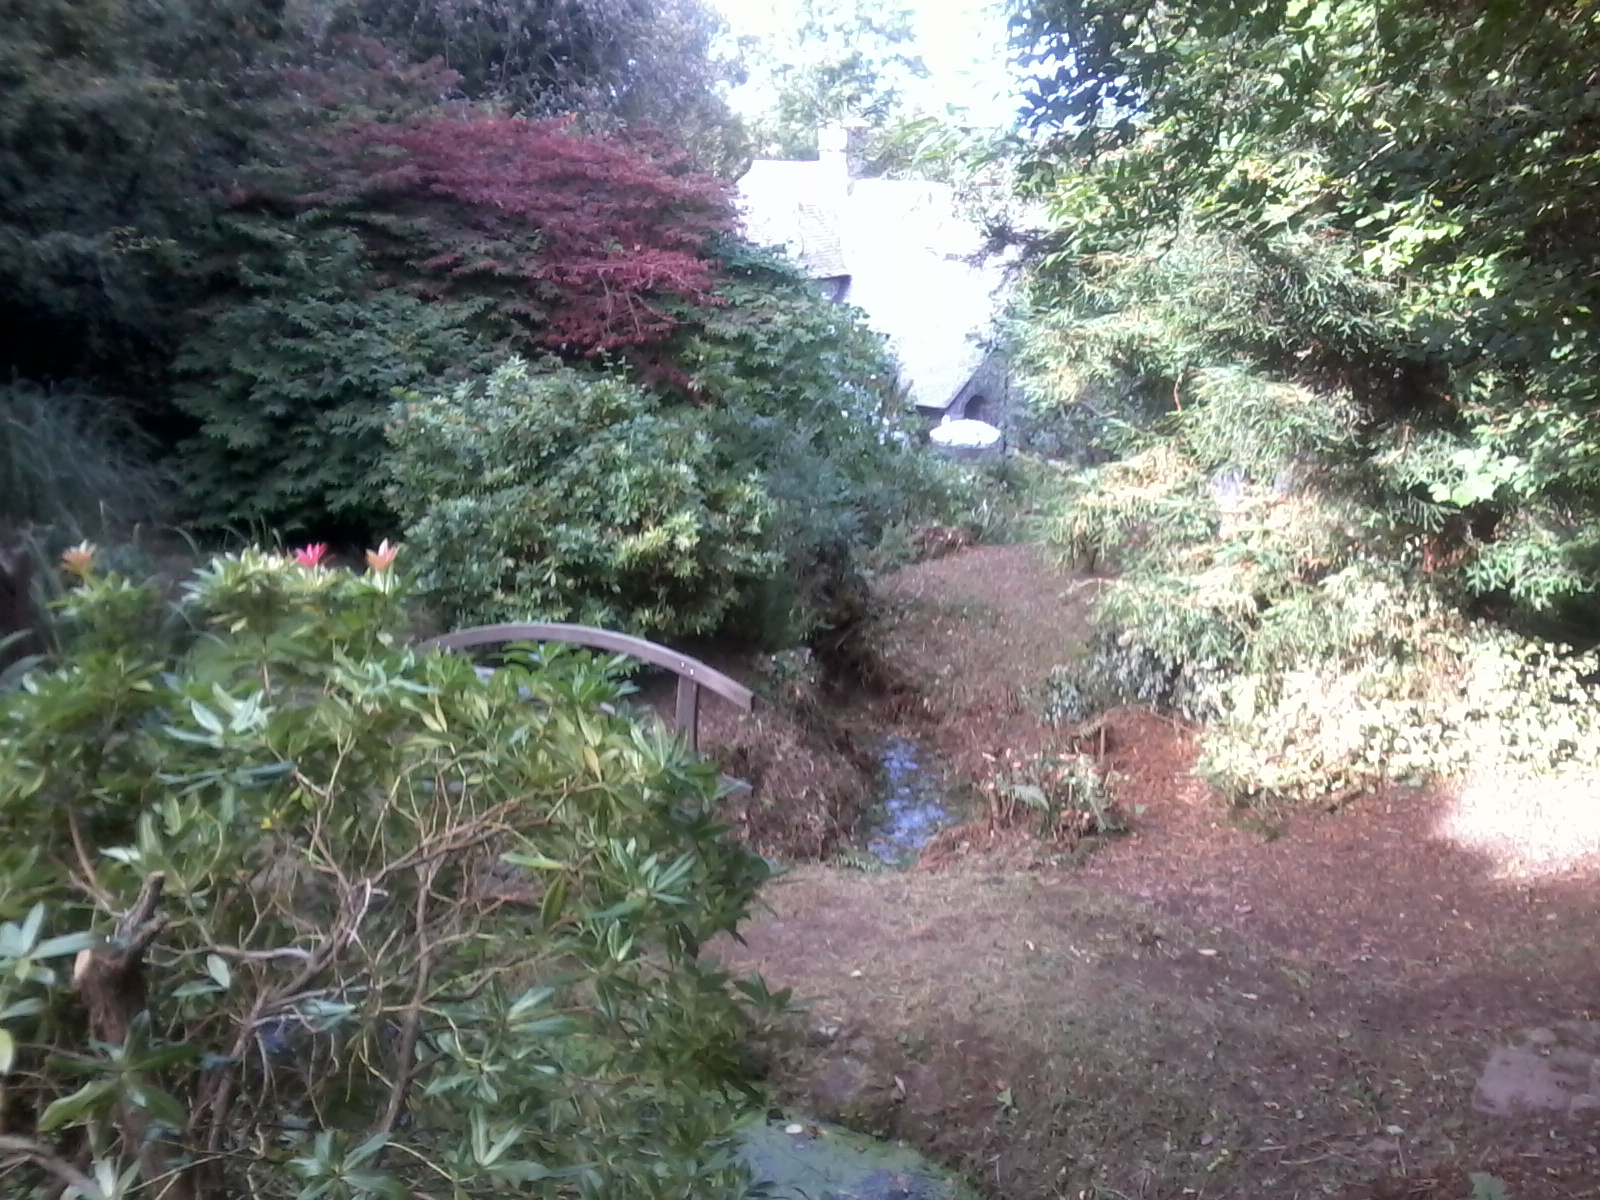 Another view of our wild garden